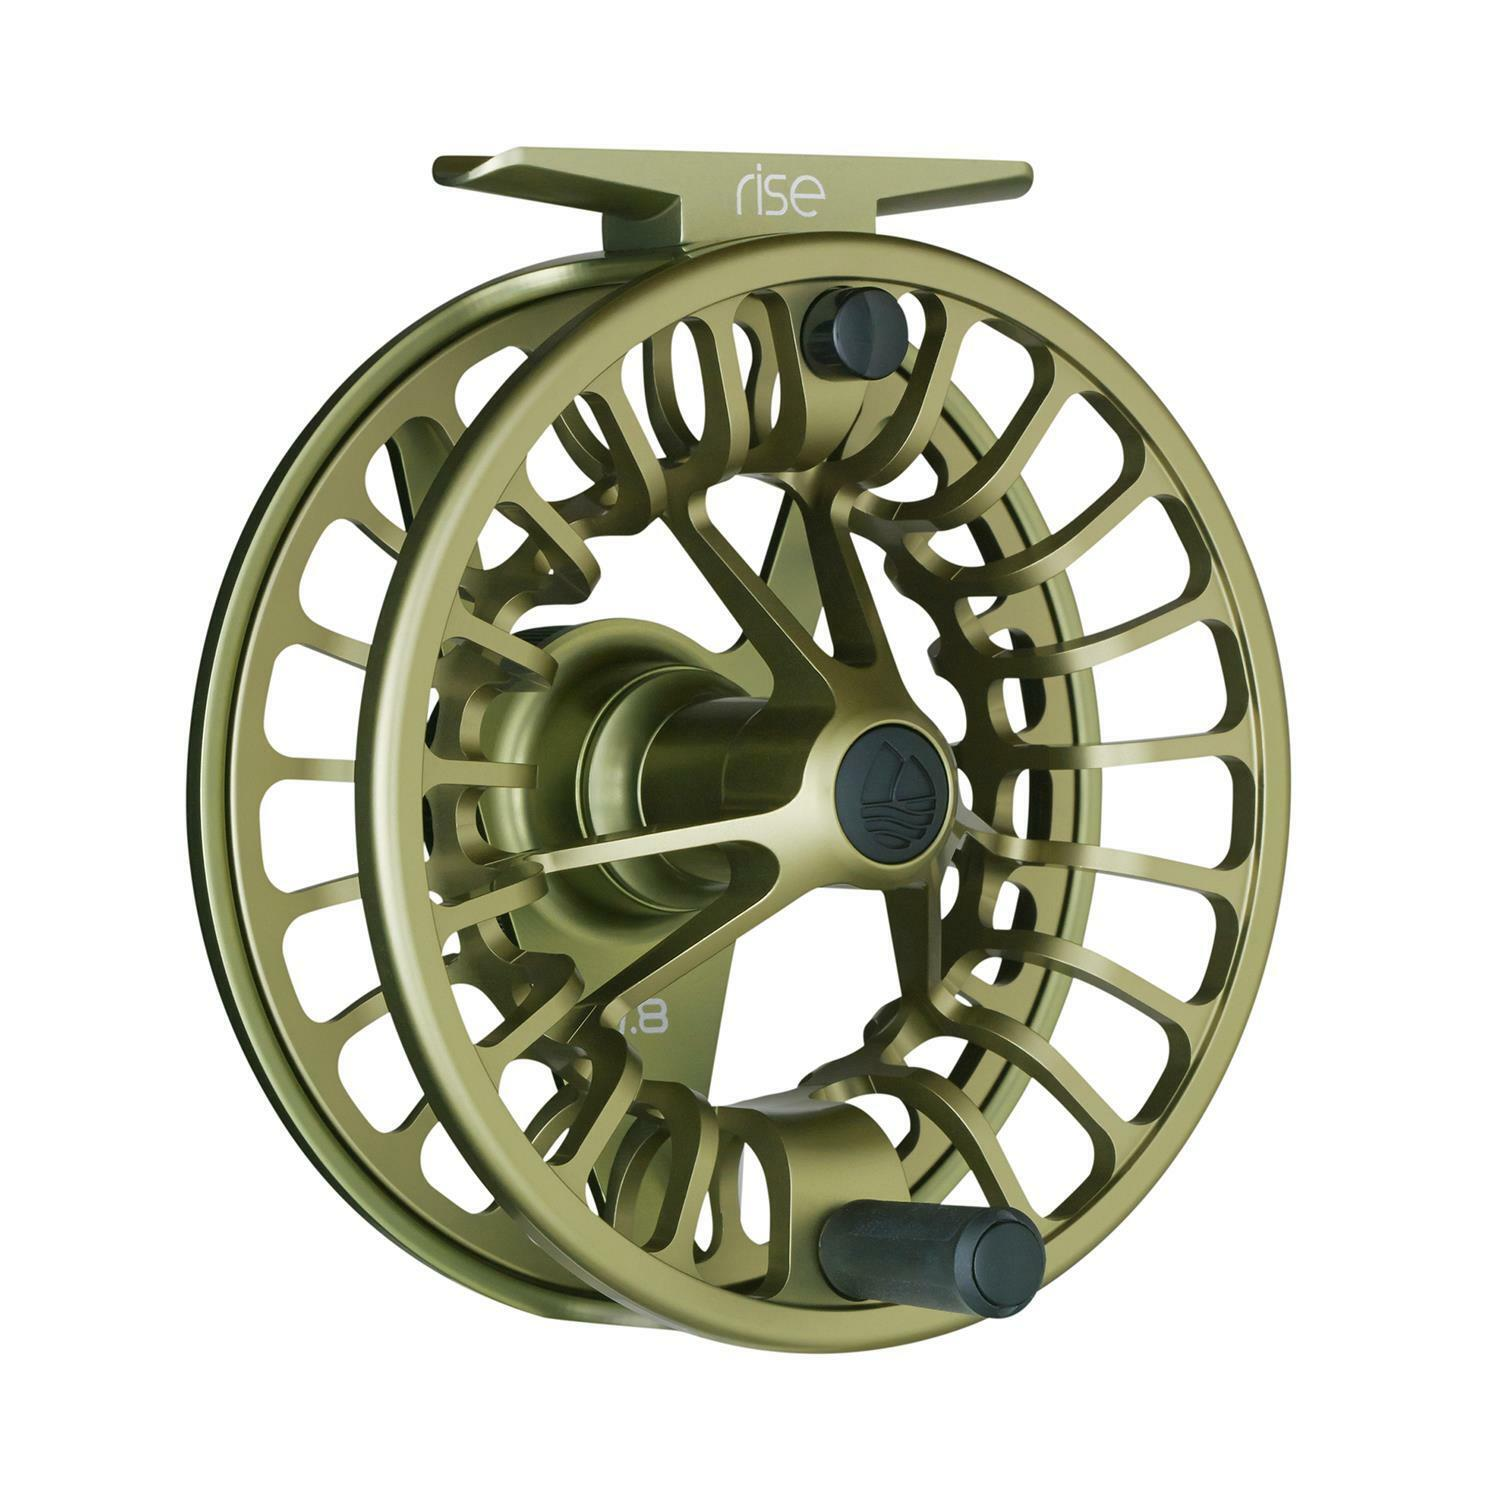 NEW REDINGTON RISE III 3 4 WEIGHT OLIVE  FLY FISHING REEL + FREE US SHIPPING  outlet online store